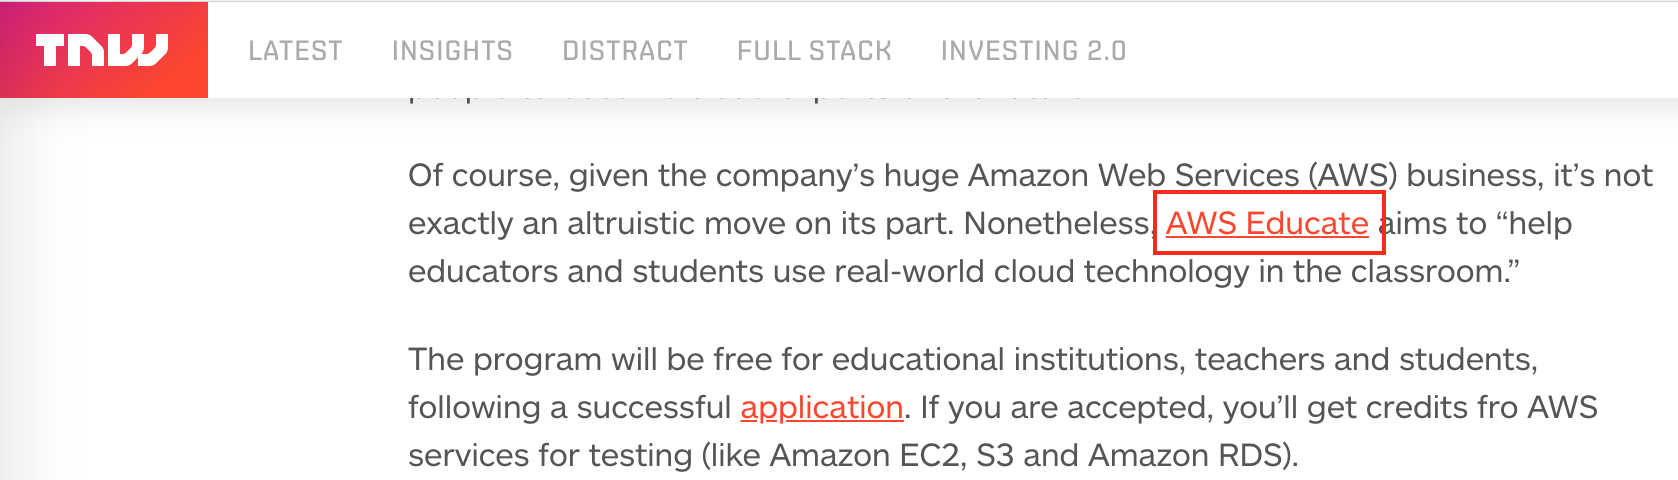 Screenshot showing a post about AWS Educate